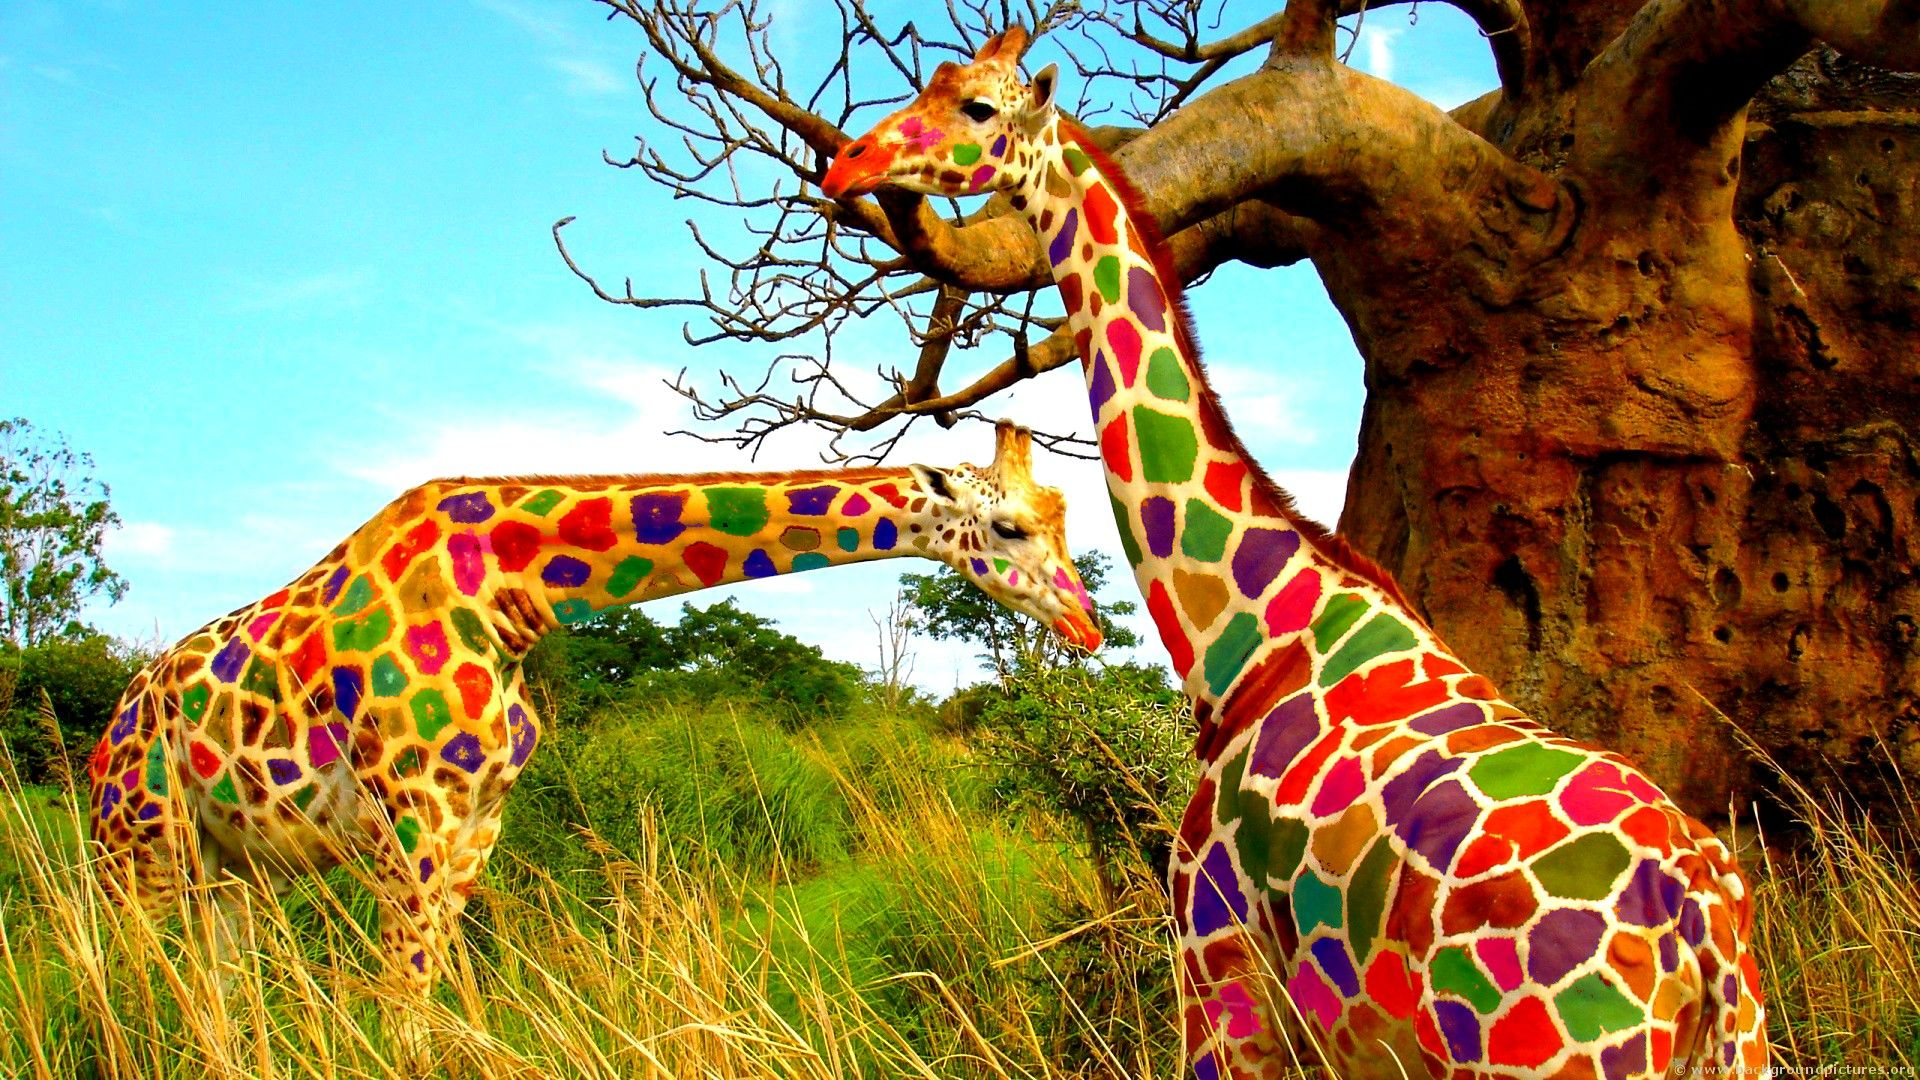 Colored Giraffe Wallpaper Wide Or Hd Animals Wallpapers Animals Beautiful Wild Animal Wallpaper Animal Pictures